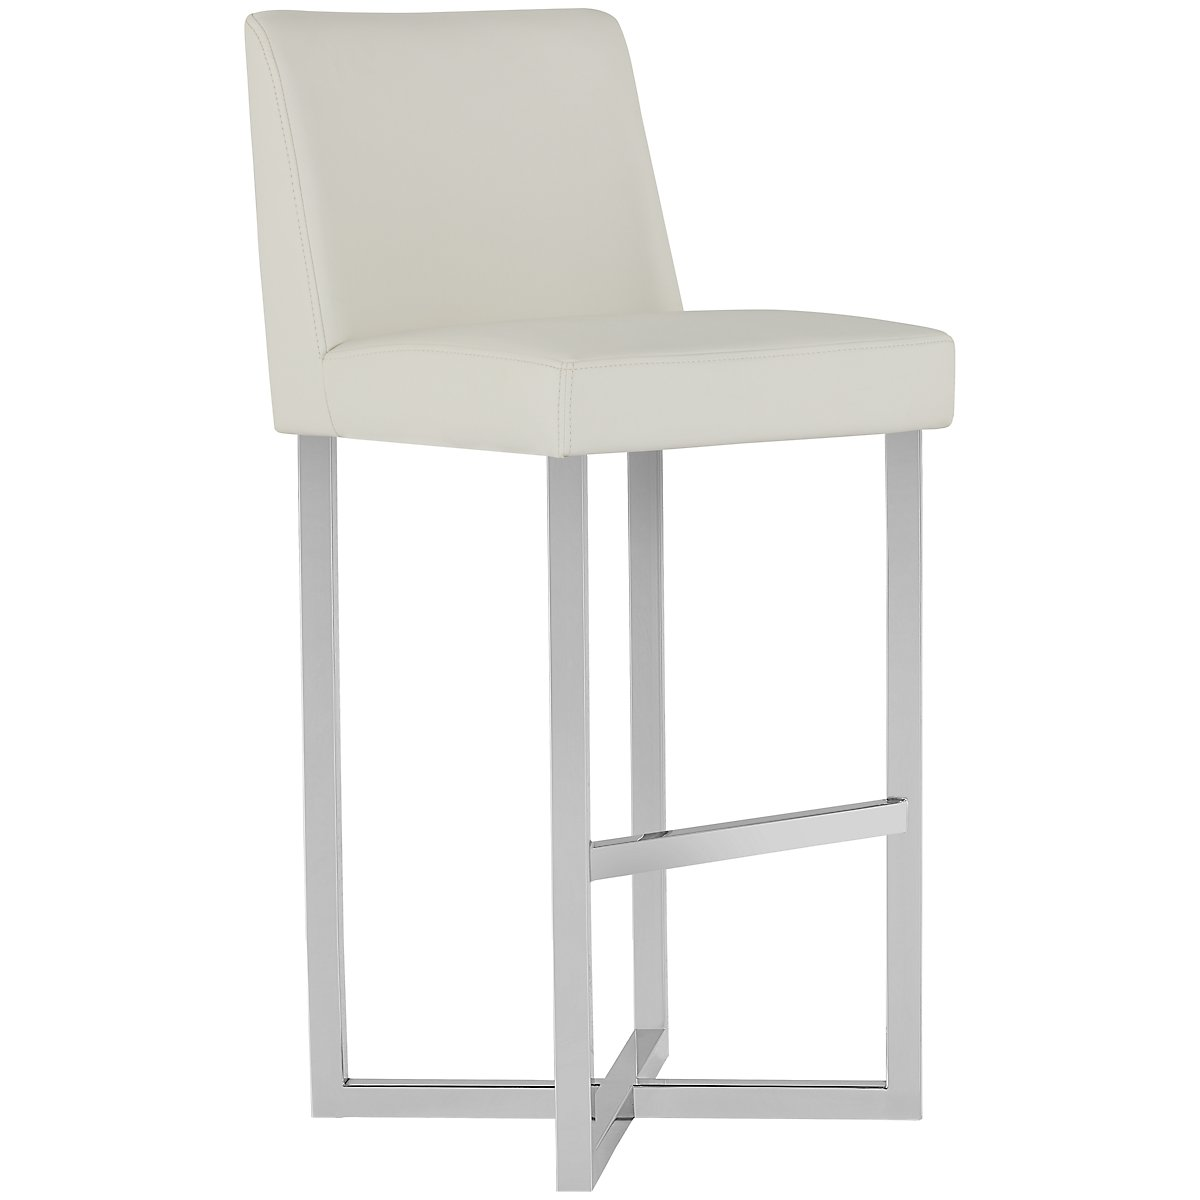 "Howard White Upholstered 30"" Upholstered Barstool"